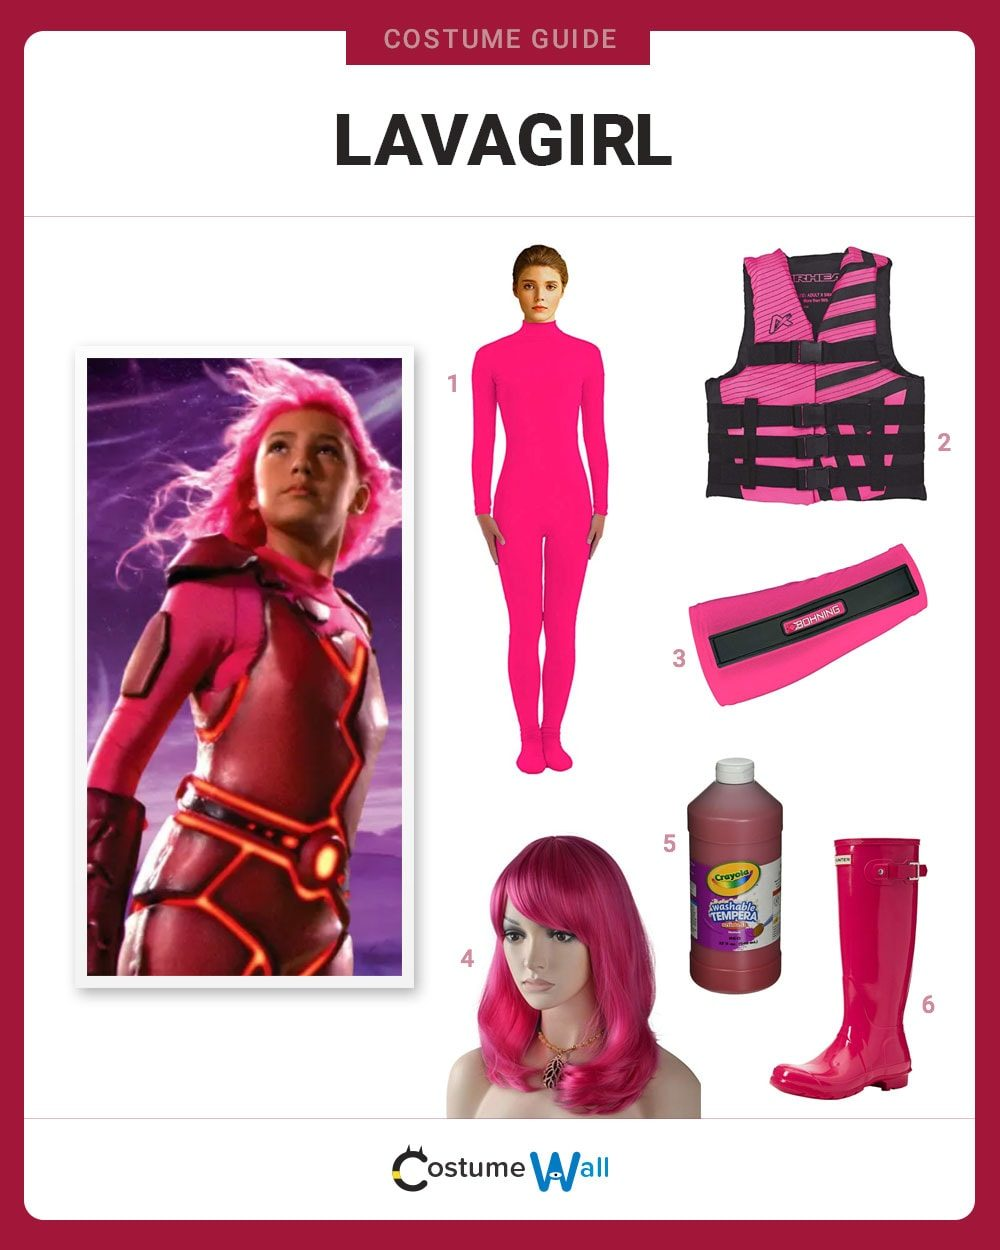 Lavagirl Costume Guide